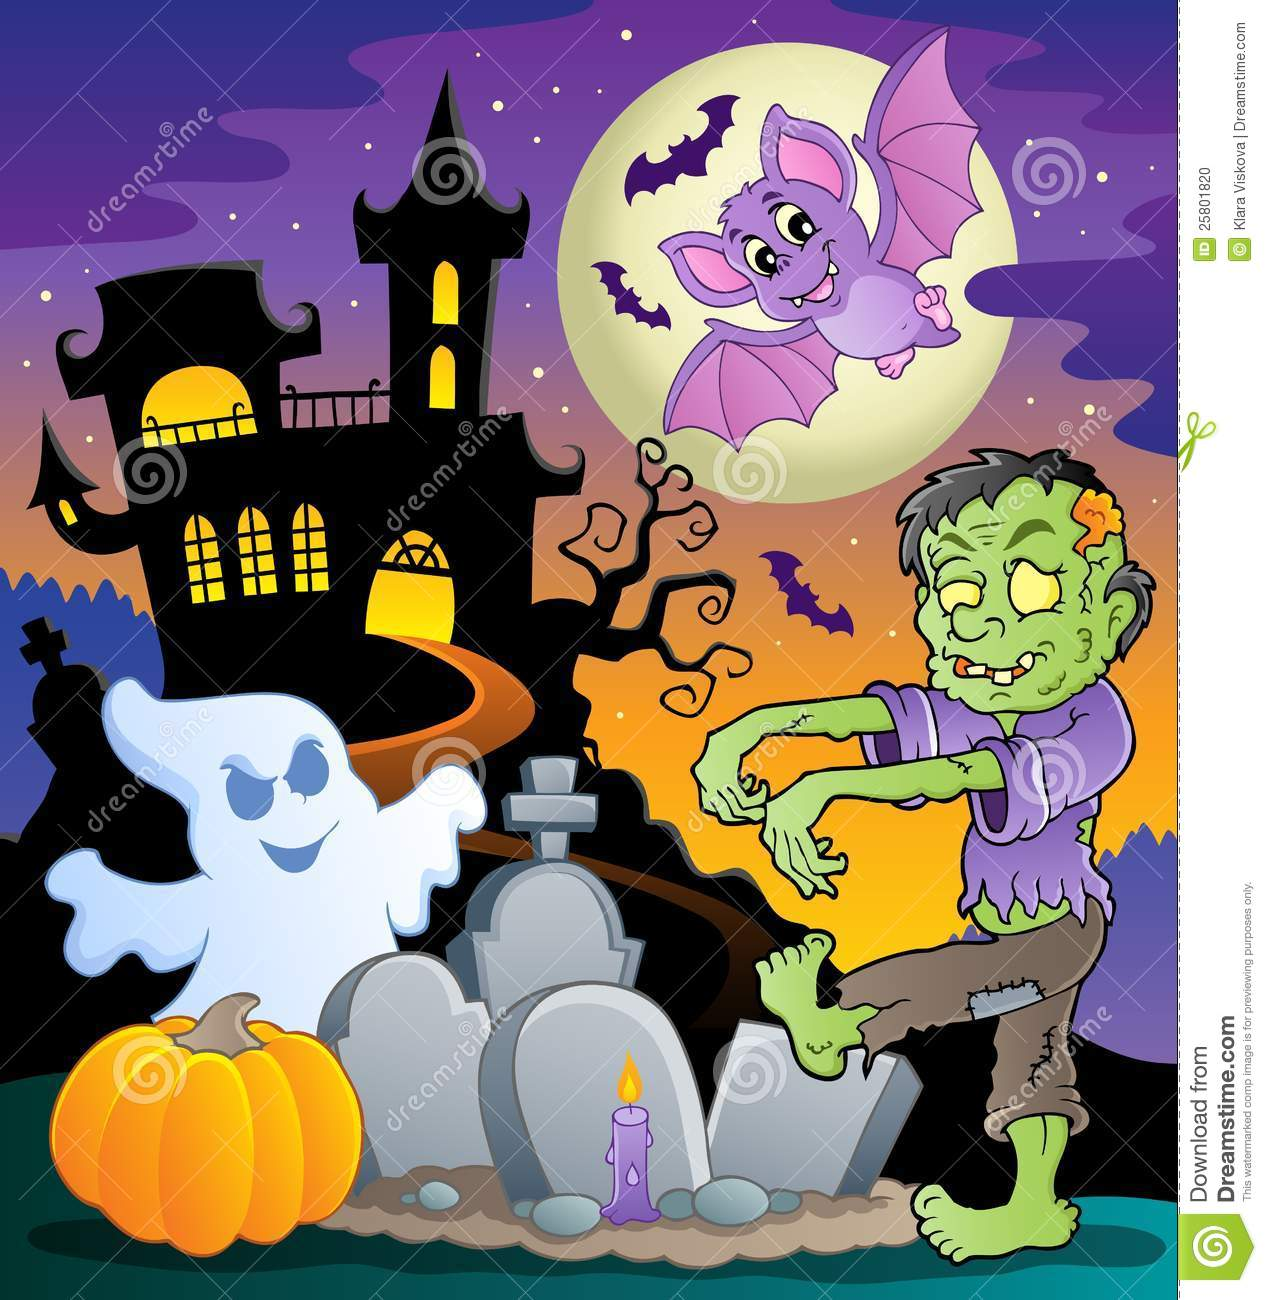 Halloween topic scene 1